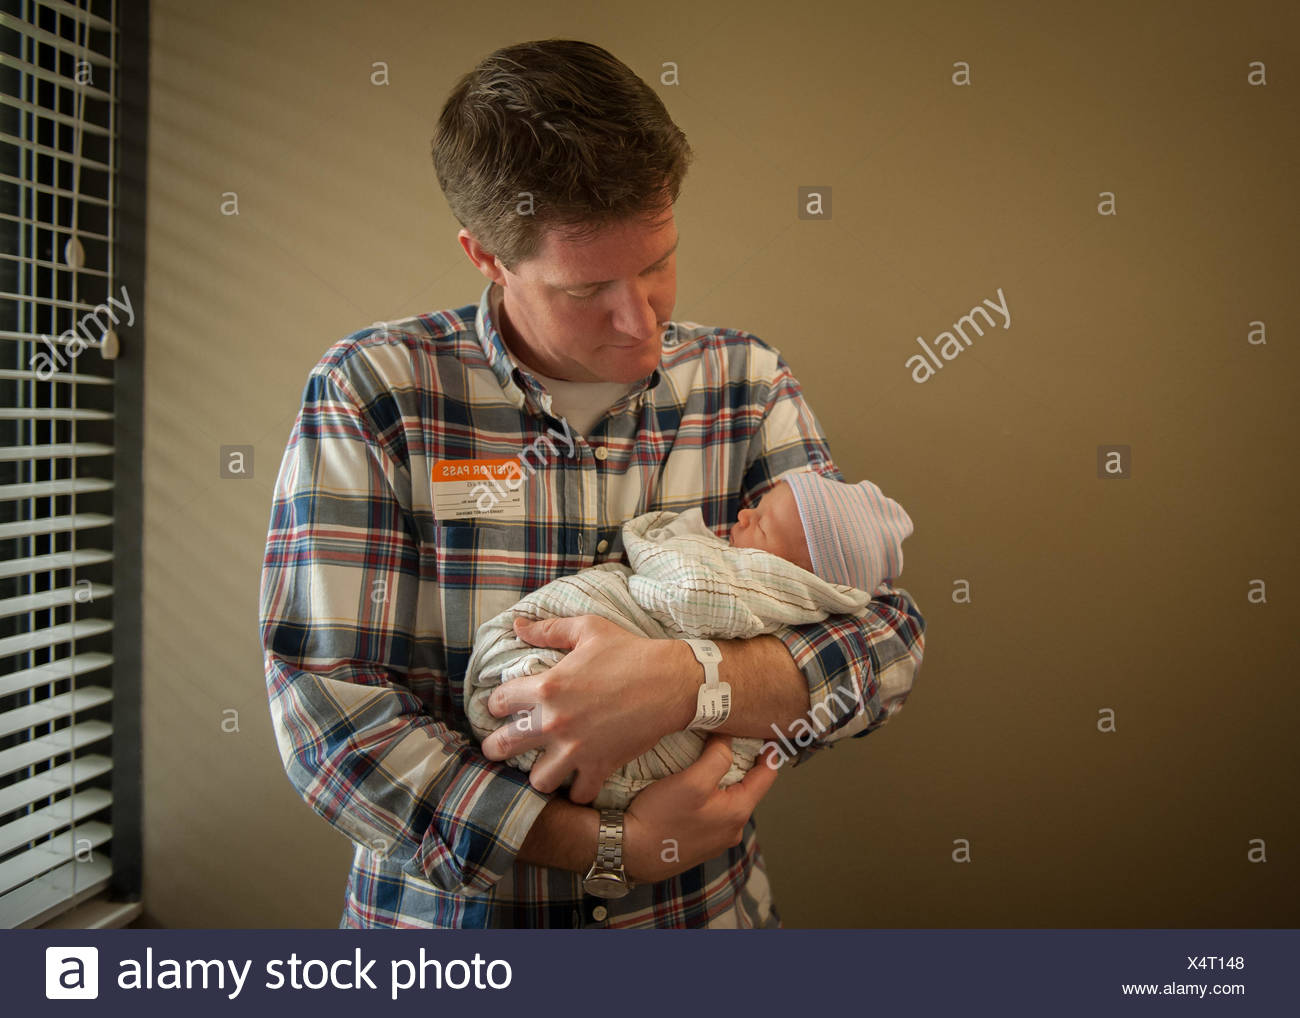 Father holding newborn baby in hospital - Stock Image